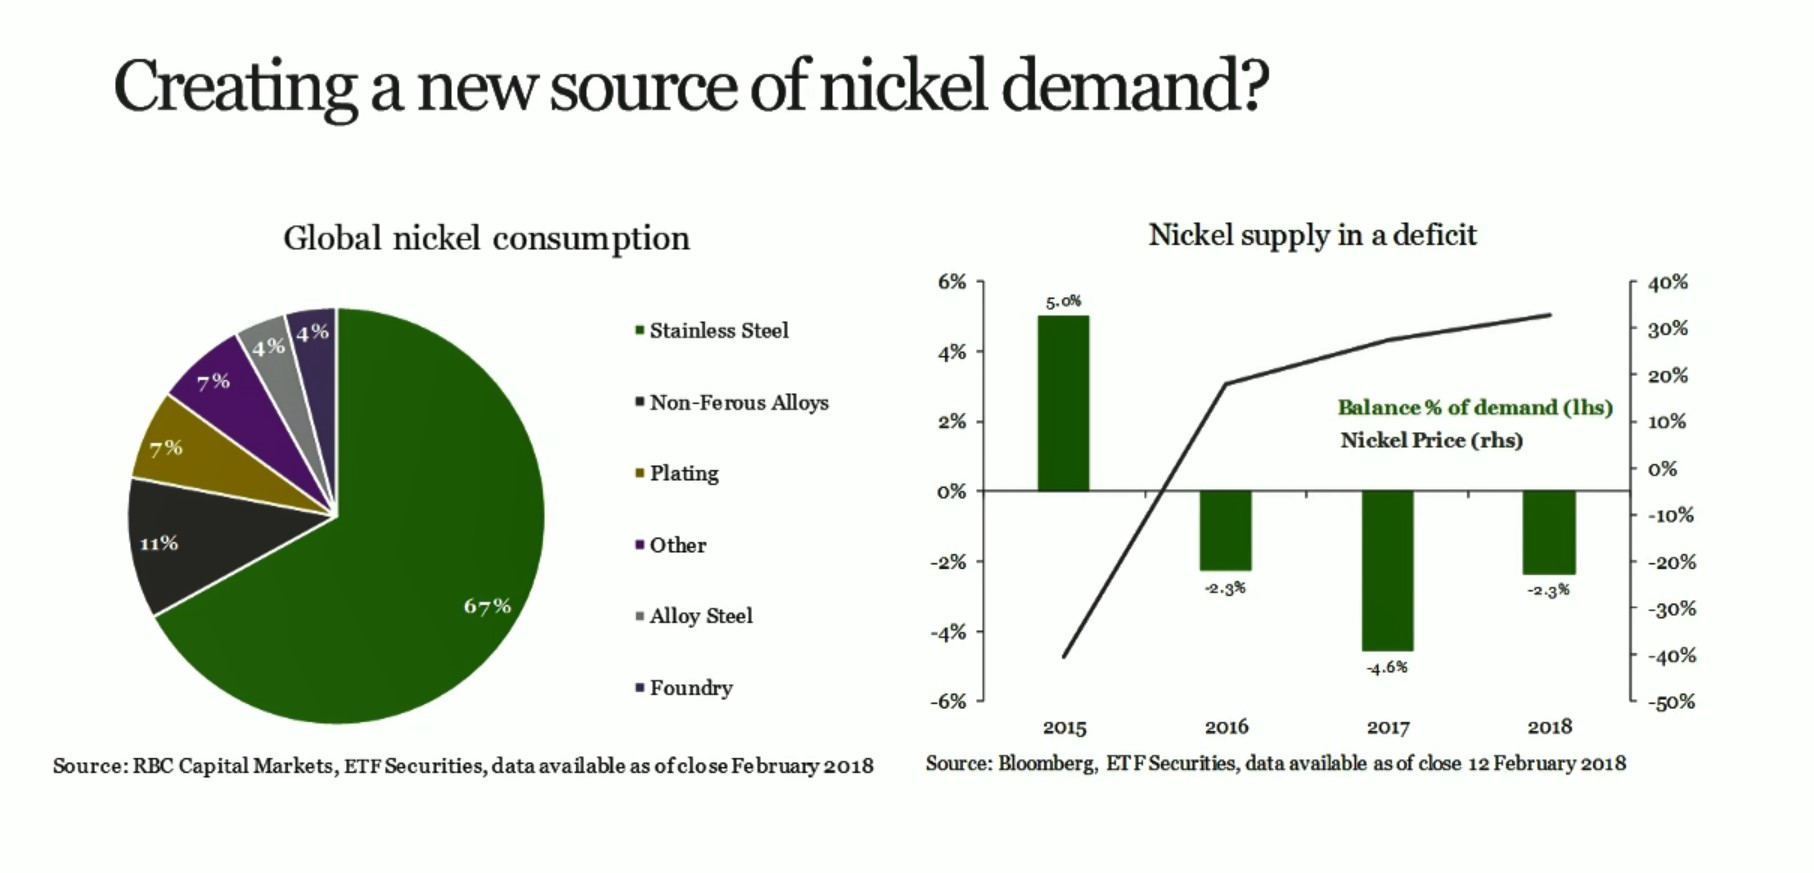 Nickel demand